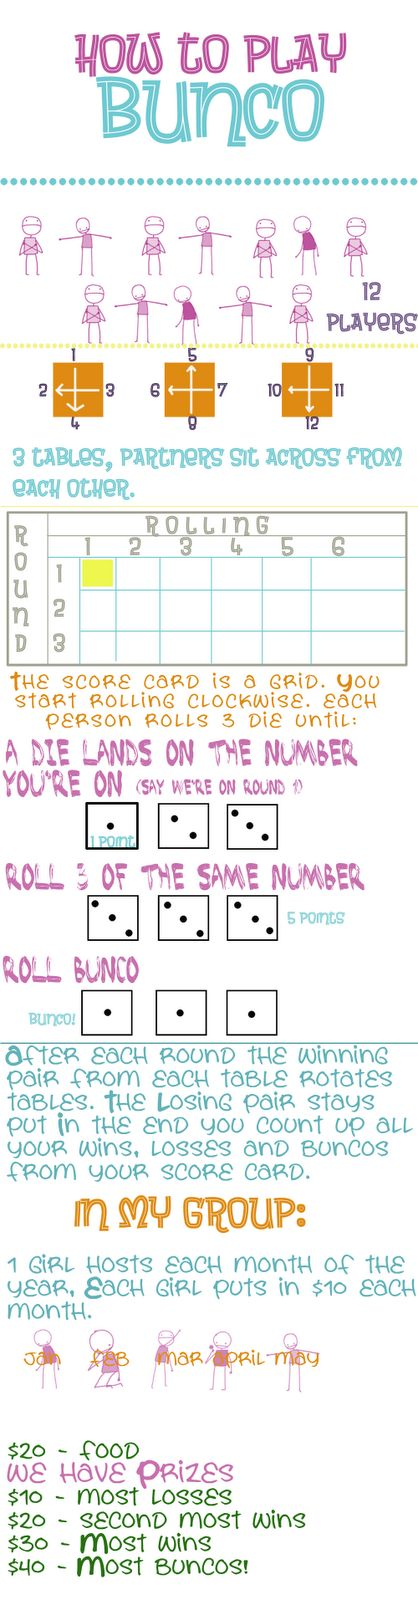 How to play bunco infographic, free score sheet download.